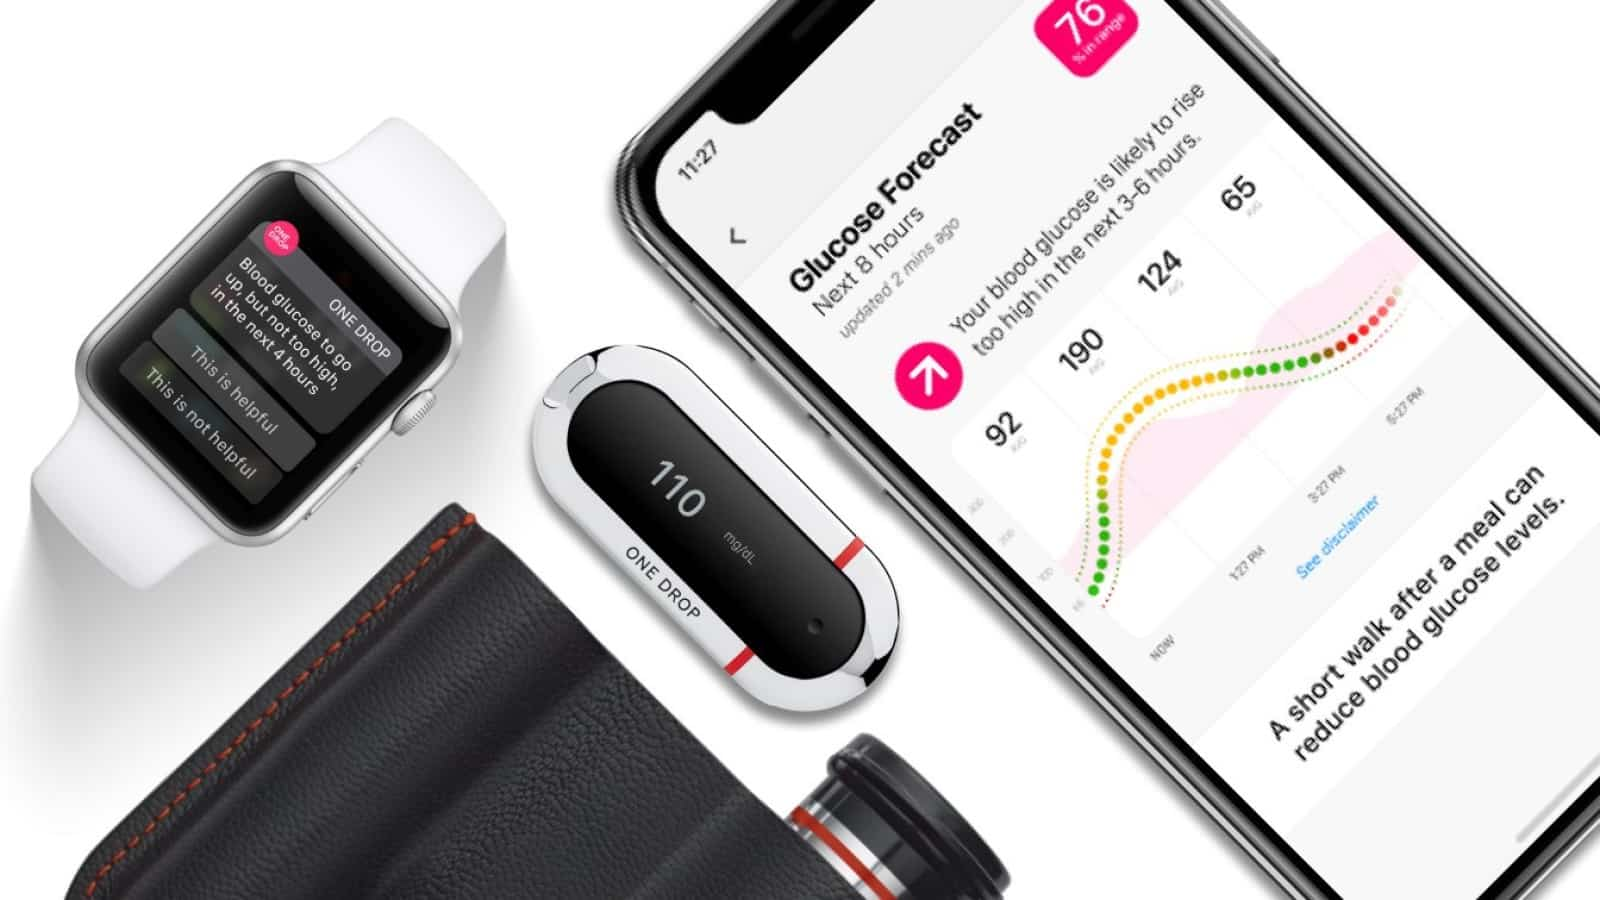 one drop glucose meter with an iphone and apple watch on white background